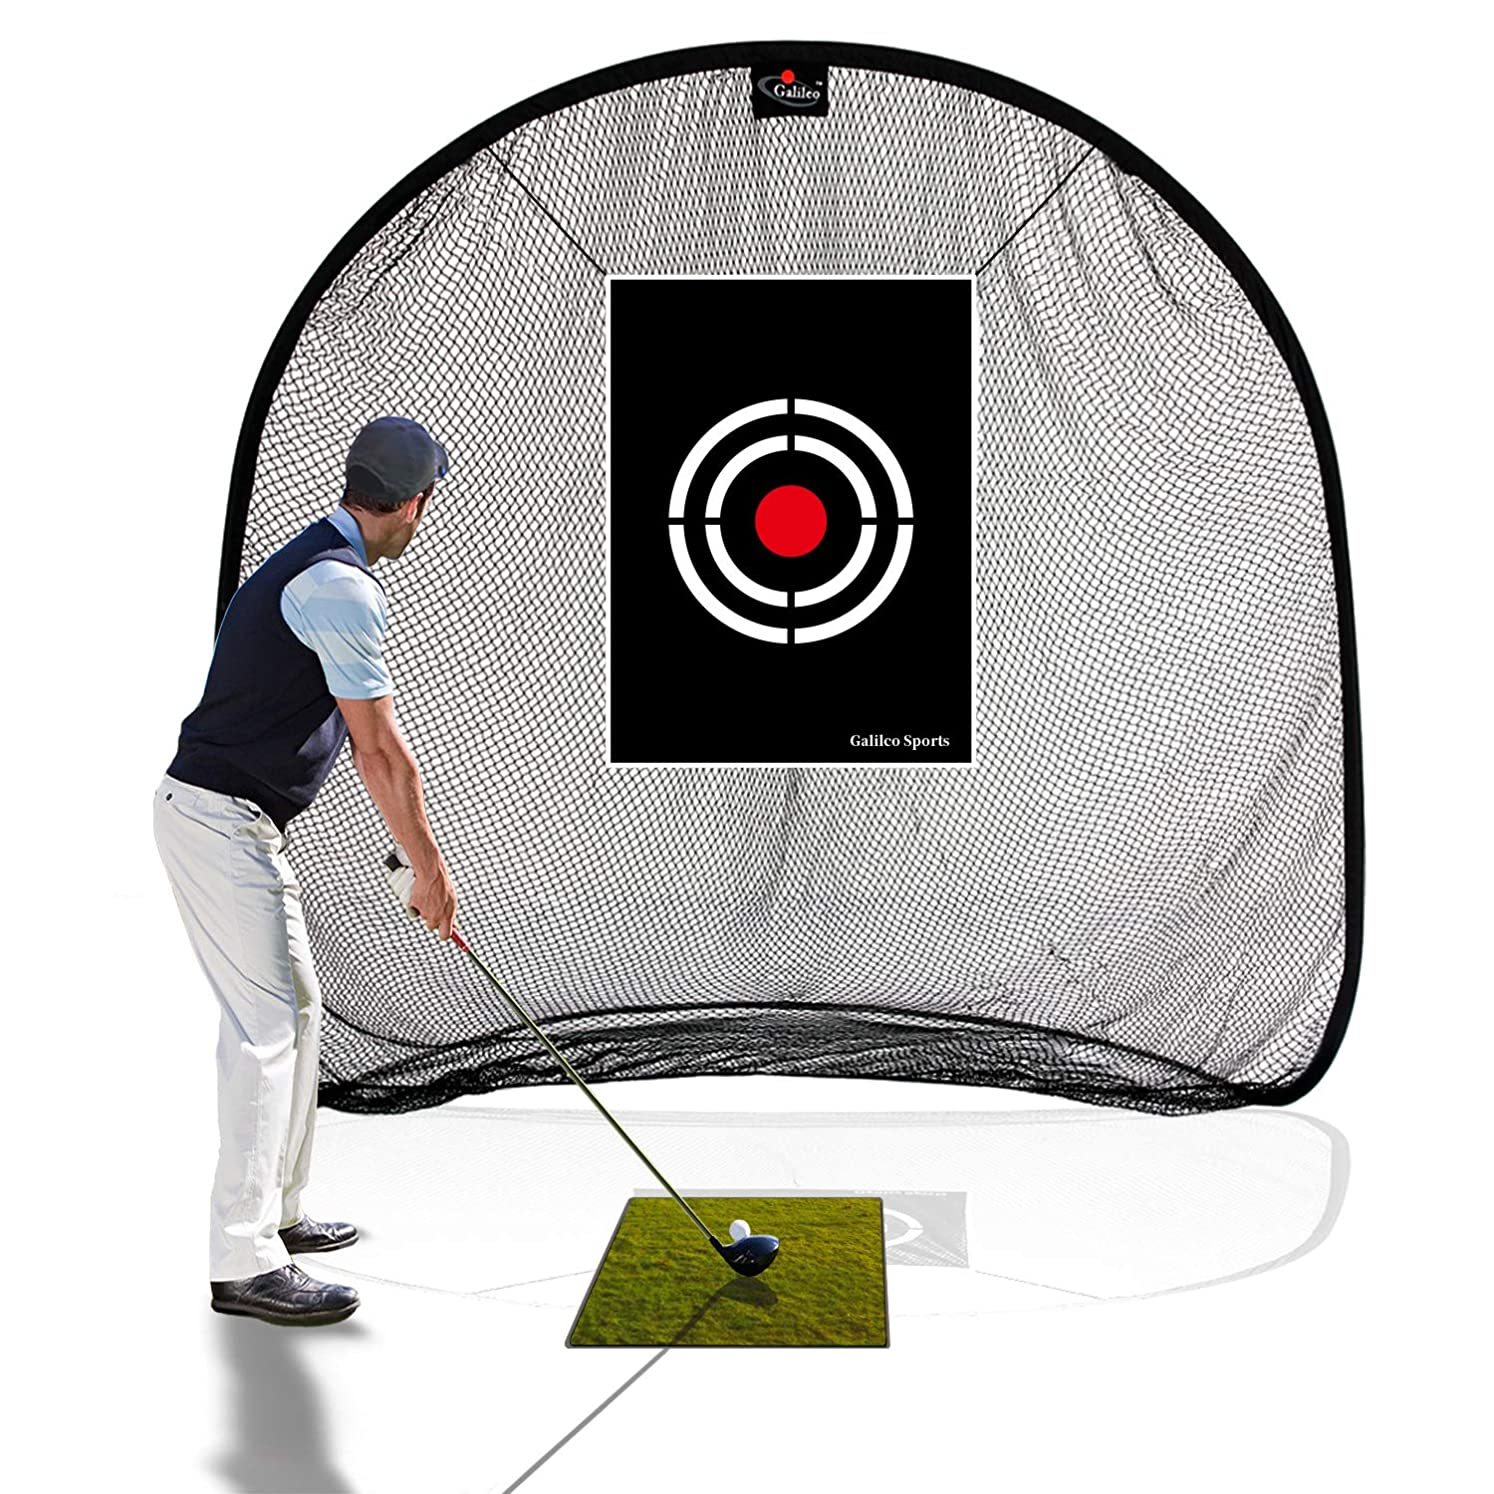 Galileo Golf Net Golf Hitting Nets for Backyard Practice Portable Driving Range Golf Cage Indoor Golf Net Training Aids with Target 7'x7'x4.5' ntrxrhpgv6882602